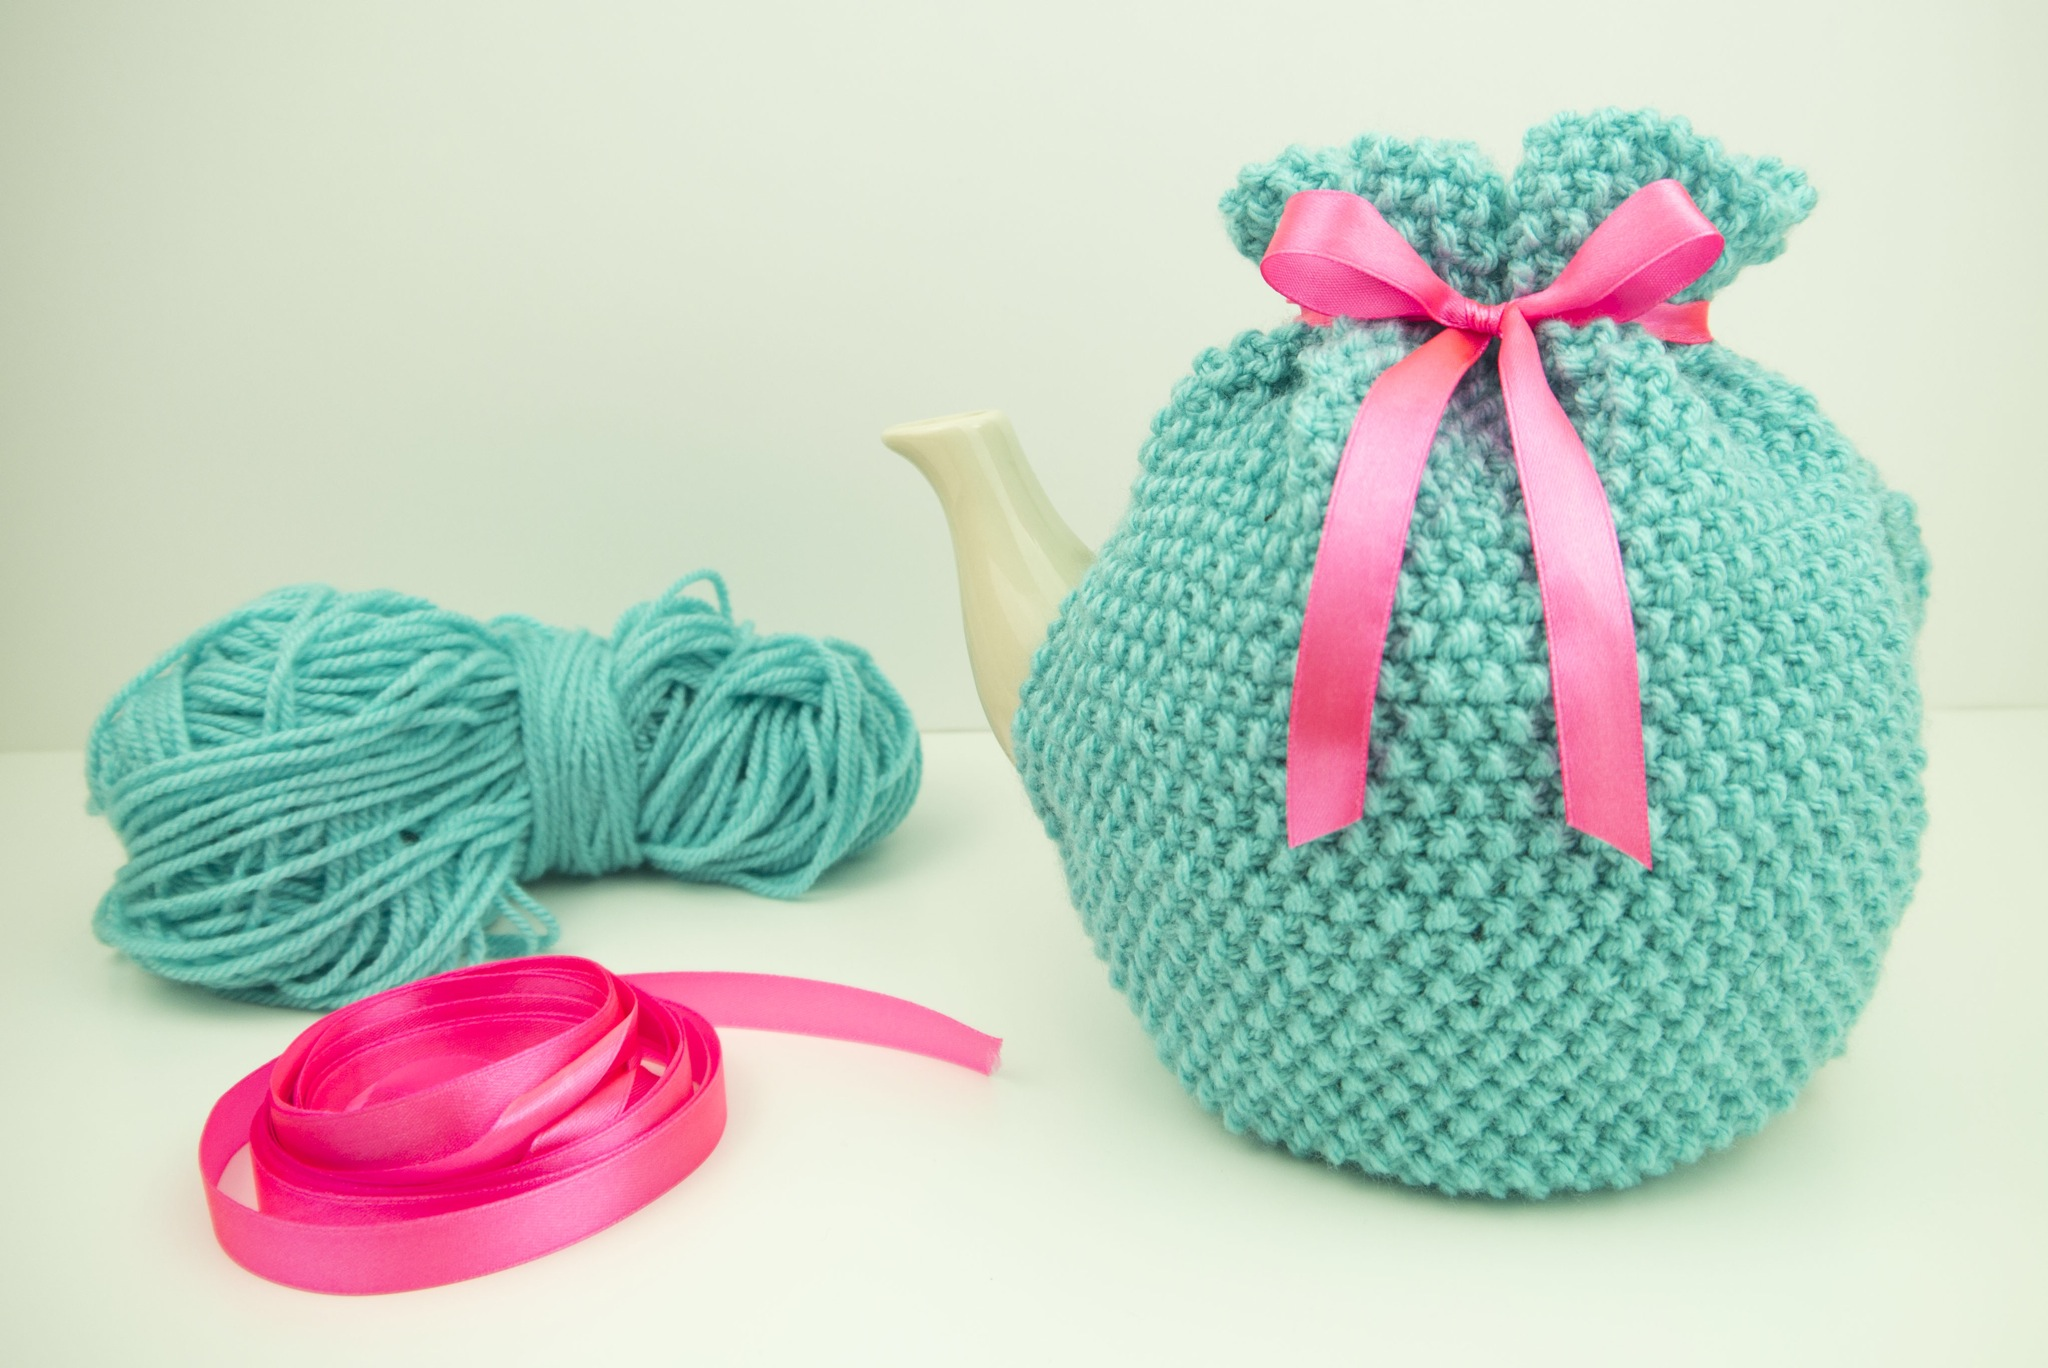 My Tea Cosy Knitting Pattern in Mollie Makes 45!   Julie & The Knits